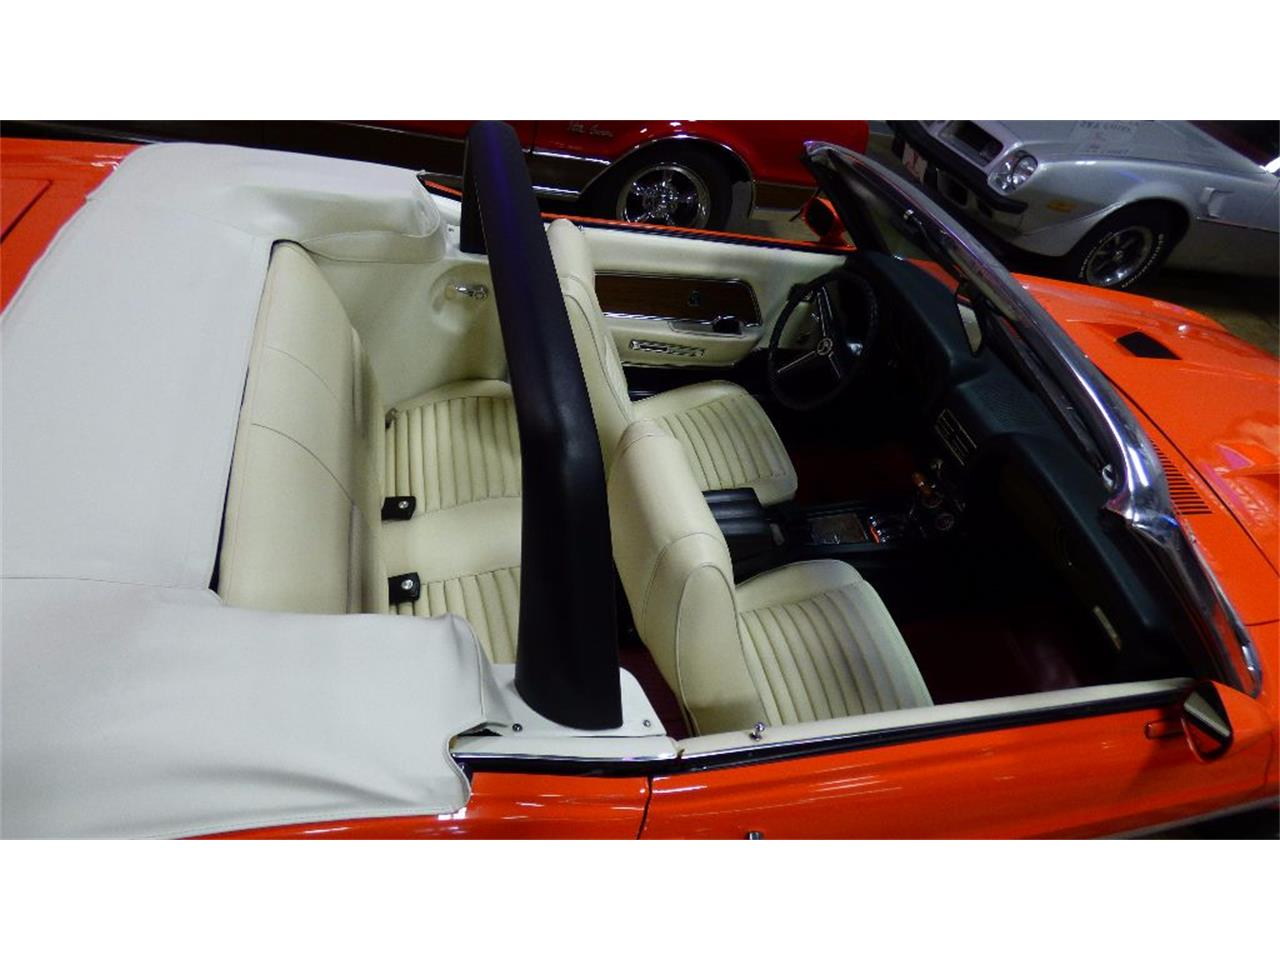 Large Picture of '69 Mustang located in Atlanta Georgia - $59,995.00 Offered by Cruisers Specialty Autos - E81K